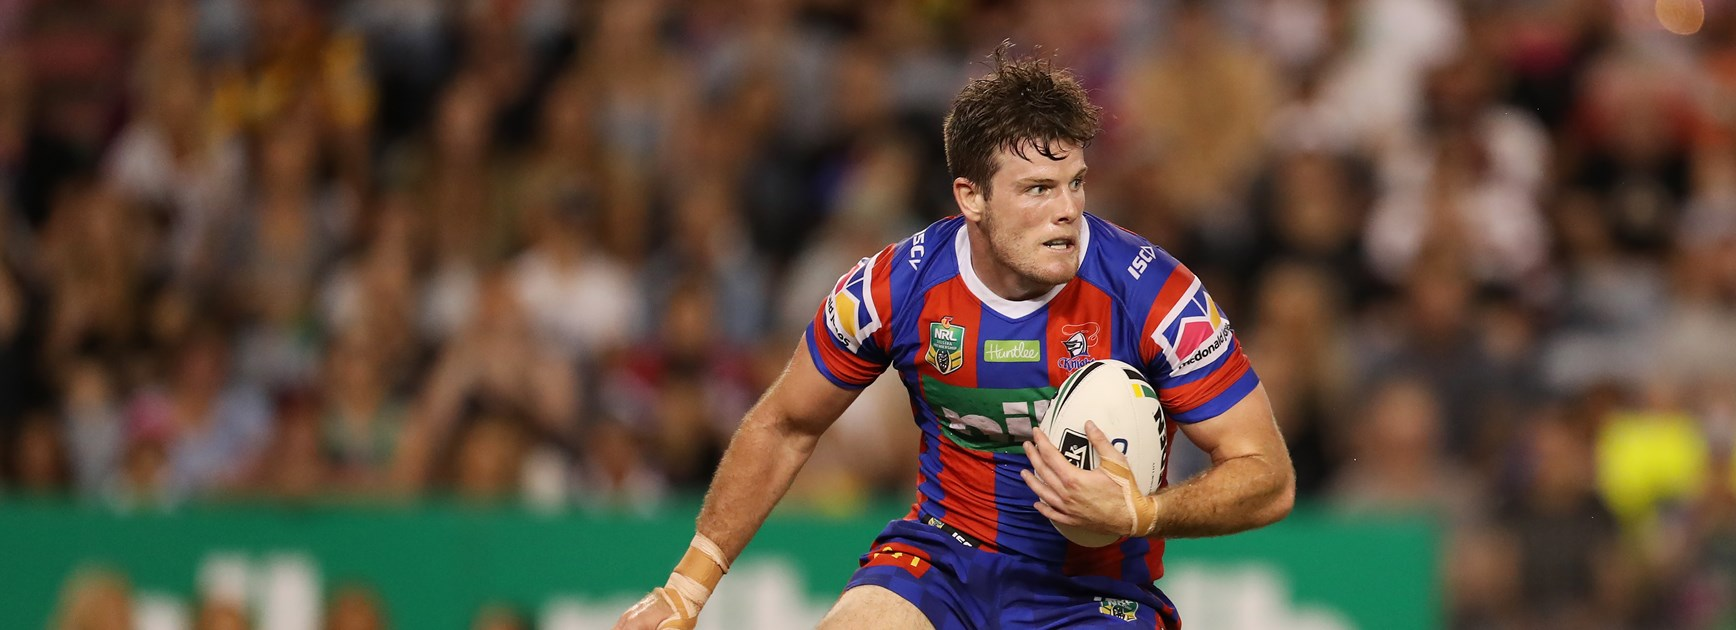 Knights back-rower Lachlan Fitzgibbon.